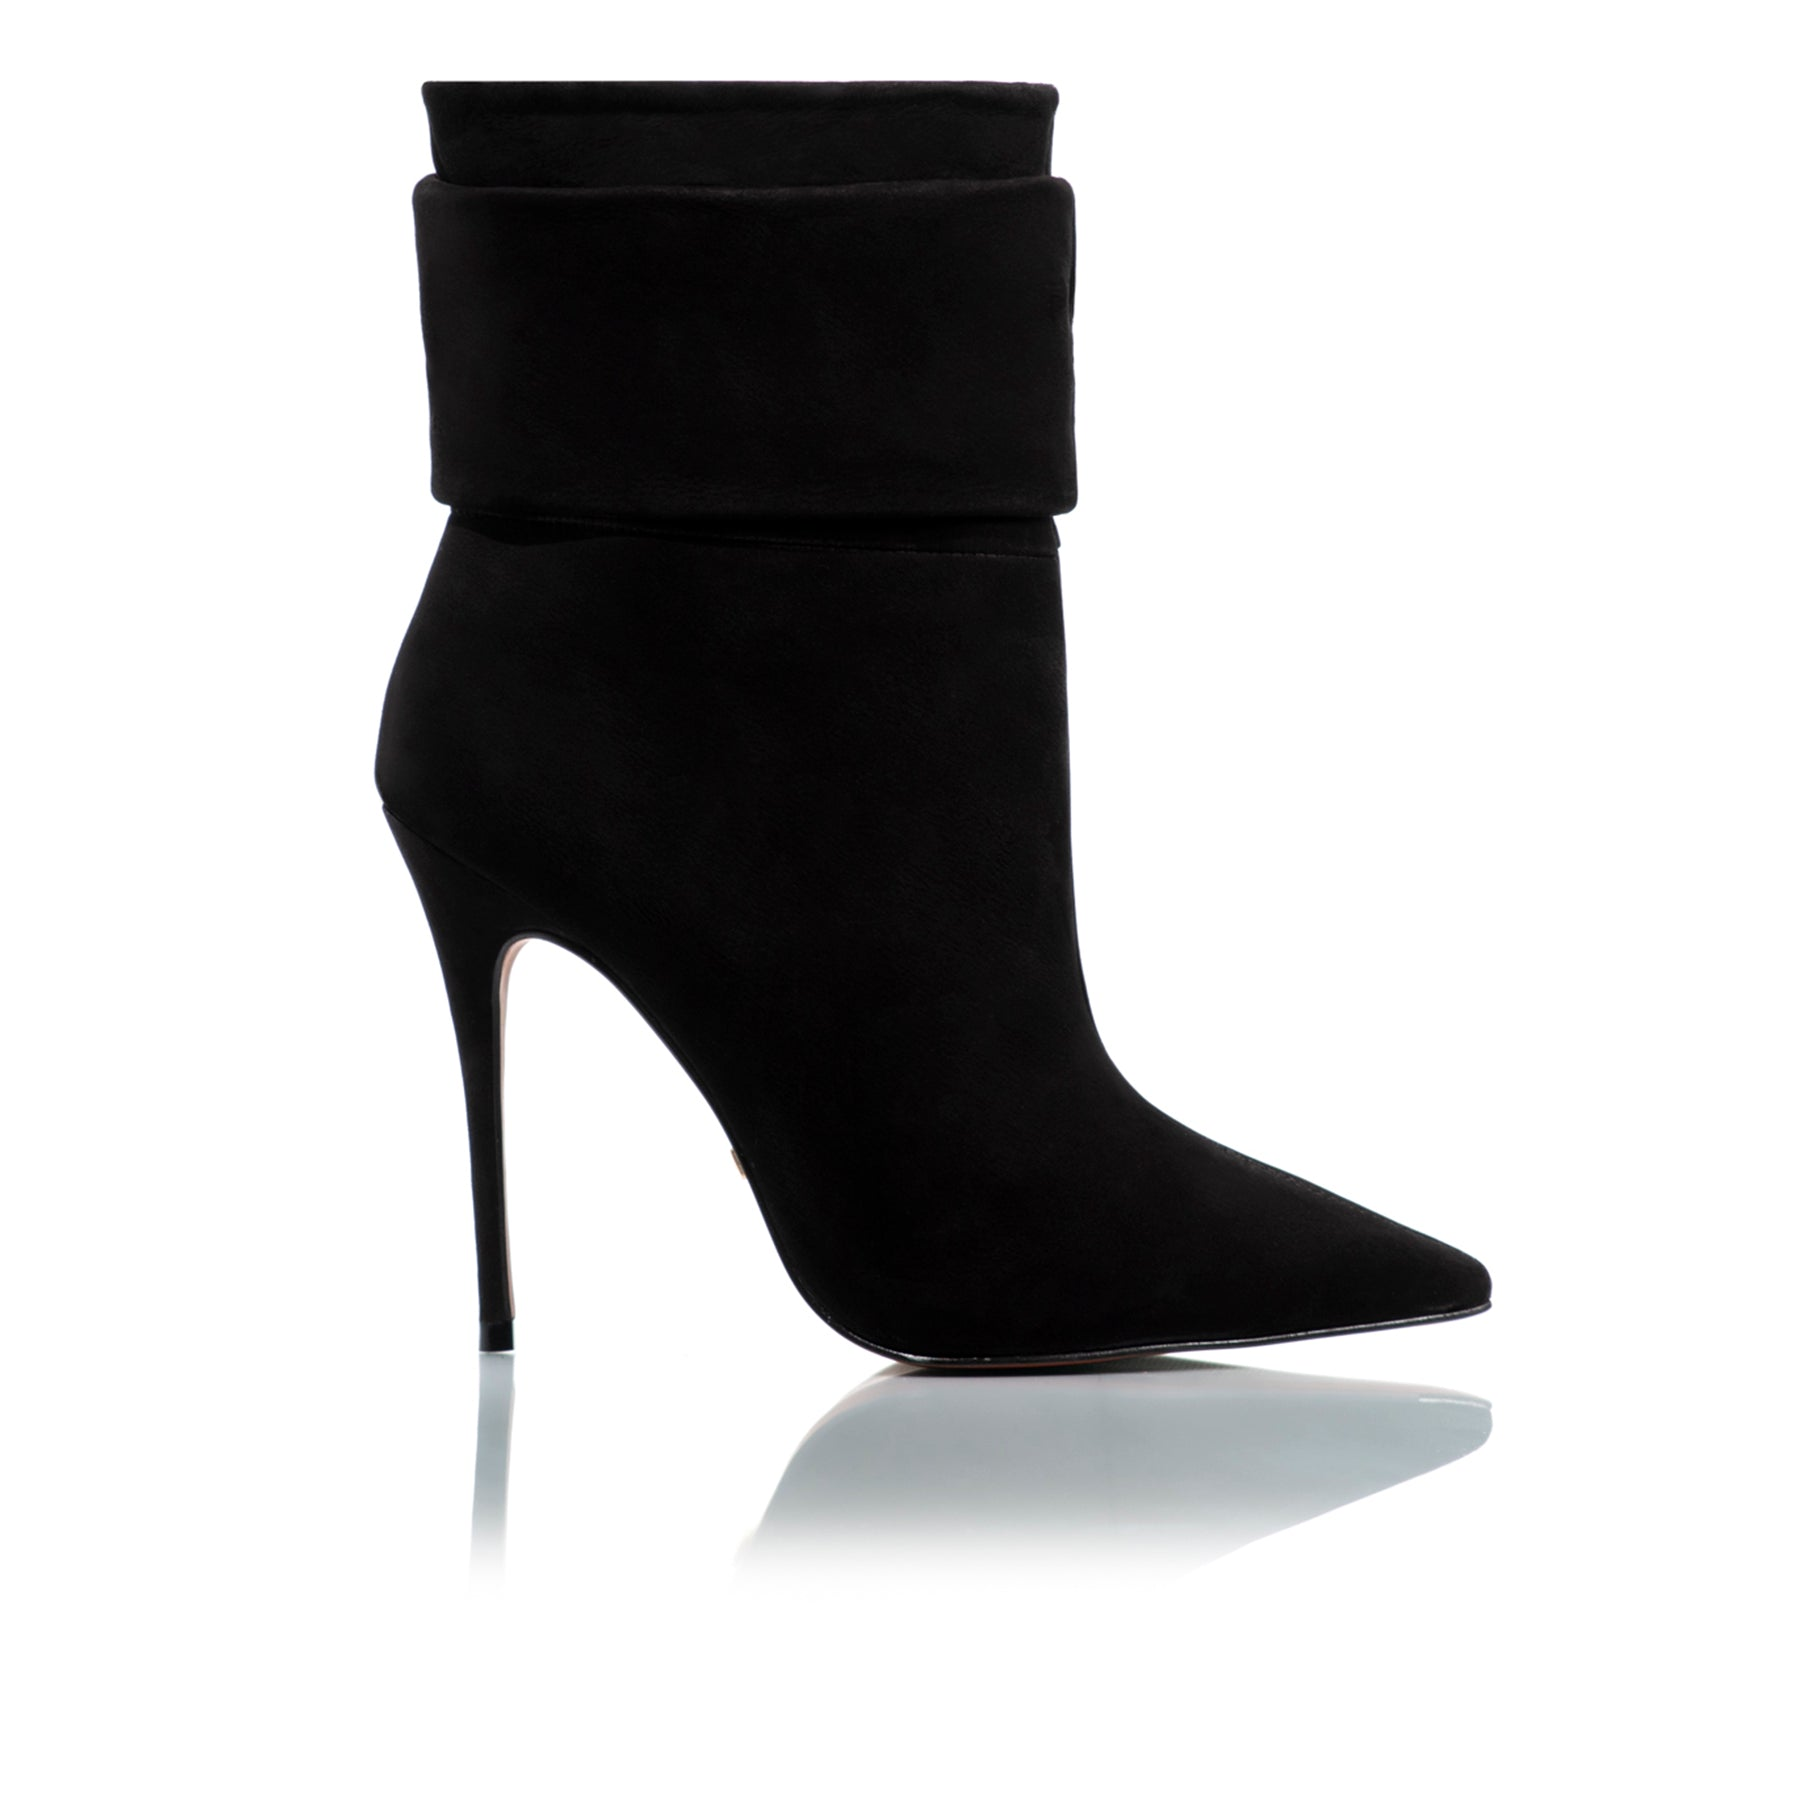 Iggy Black Nubuck Ankle-Boots